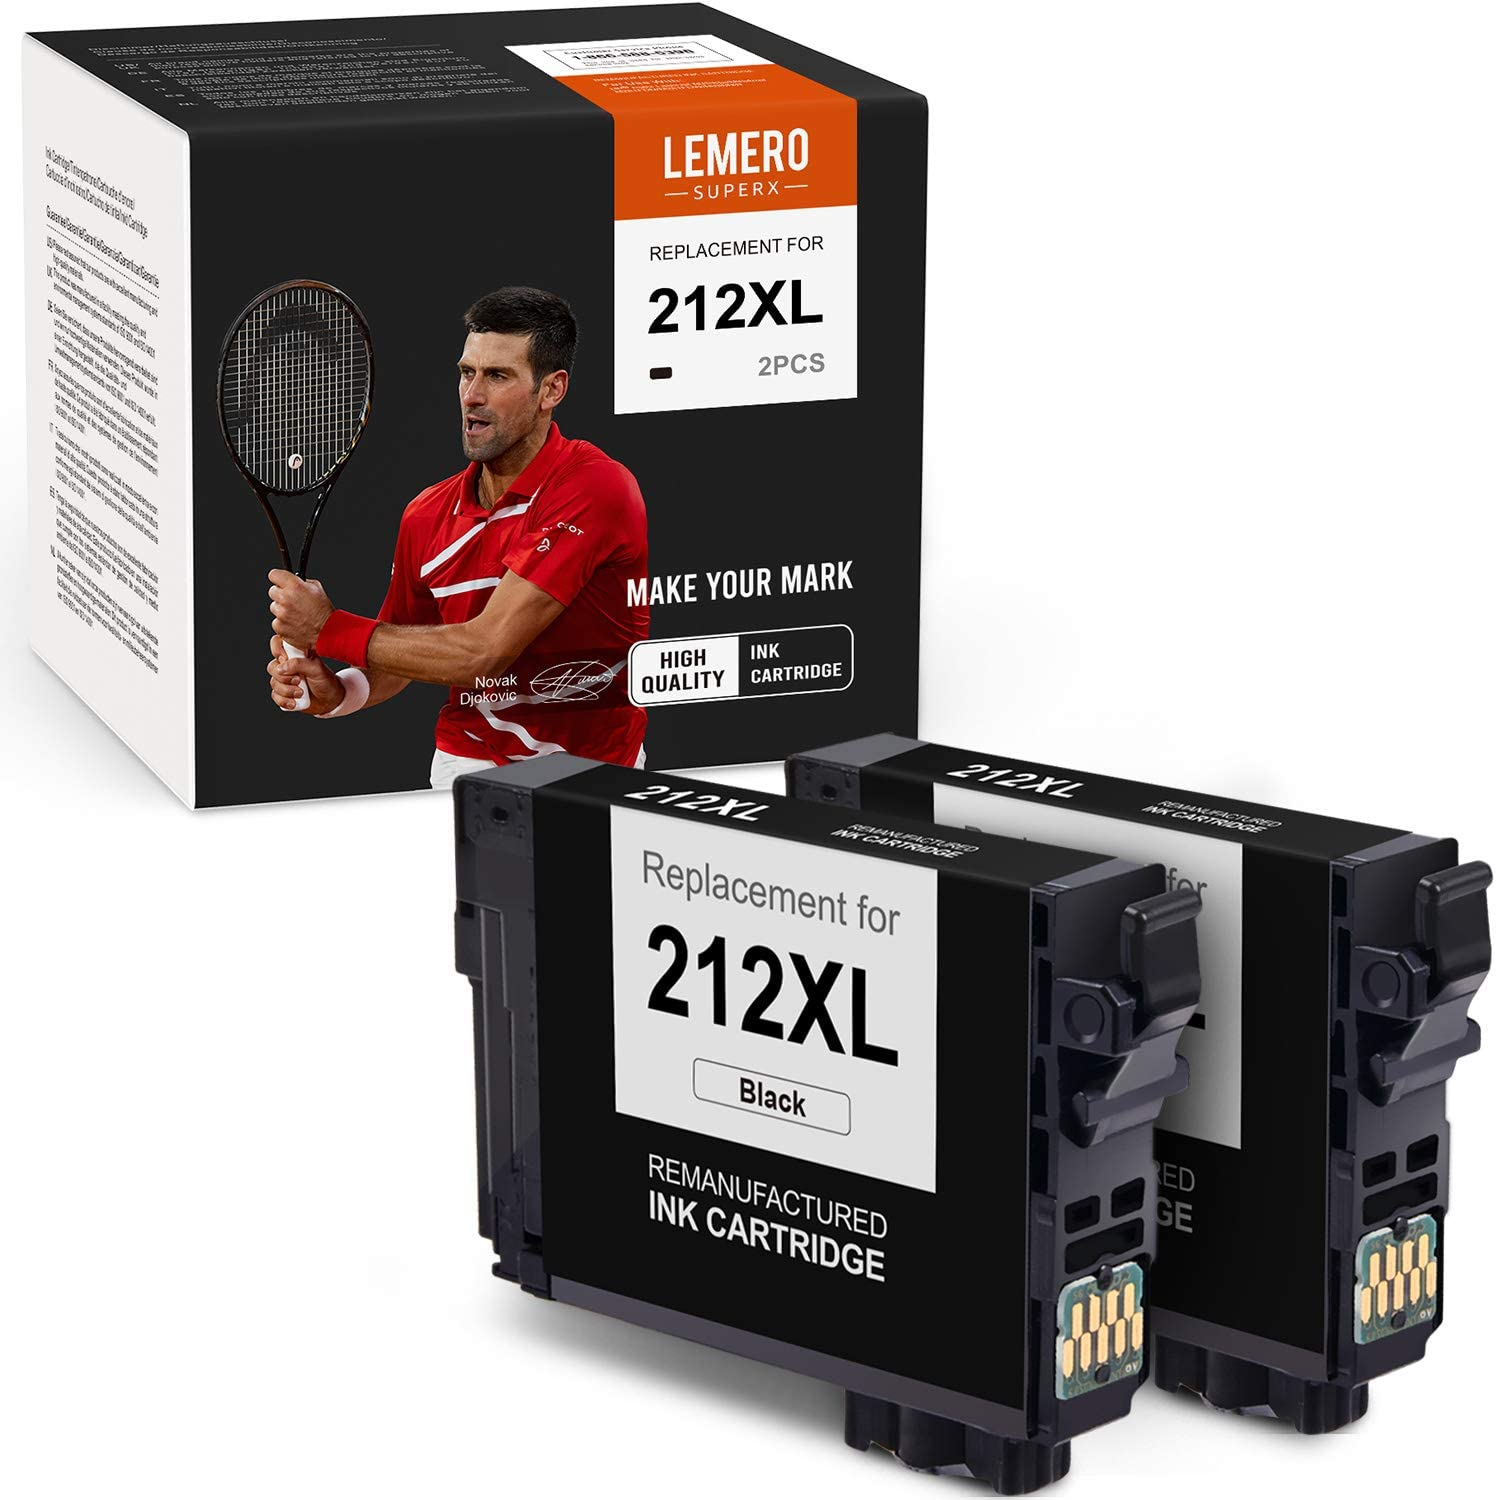 LemeroSuperx Remanufactured Ink Cartridges Replacement for Epson 212XL T212XL Work for Expression Home XP-4100 XP-4105 Workforce WF-2850 WF-2830 (Black, 2 Pack)